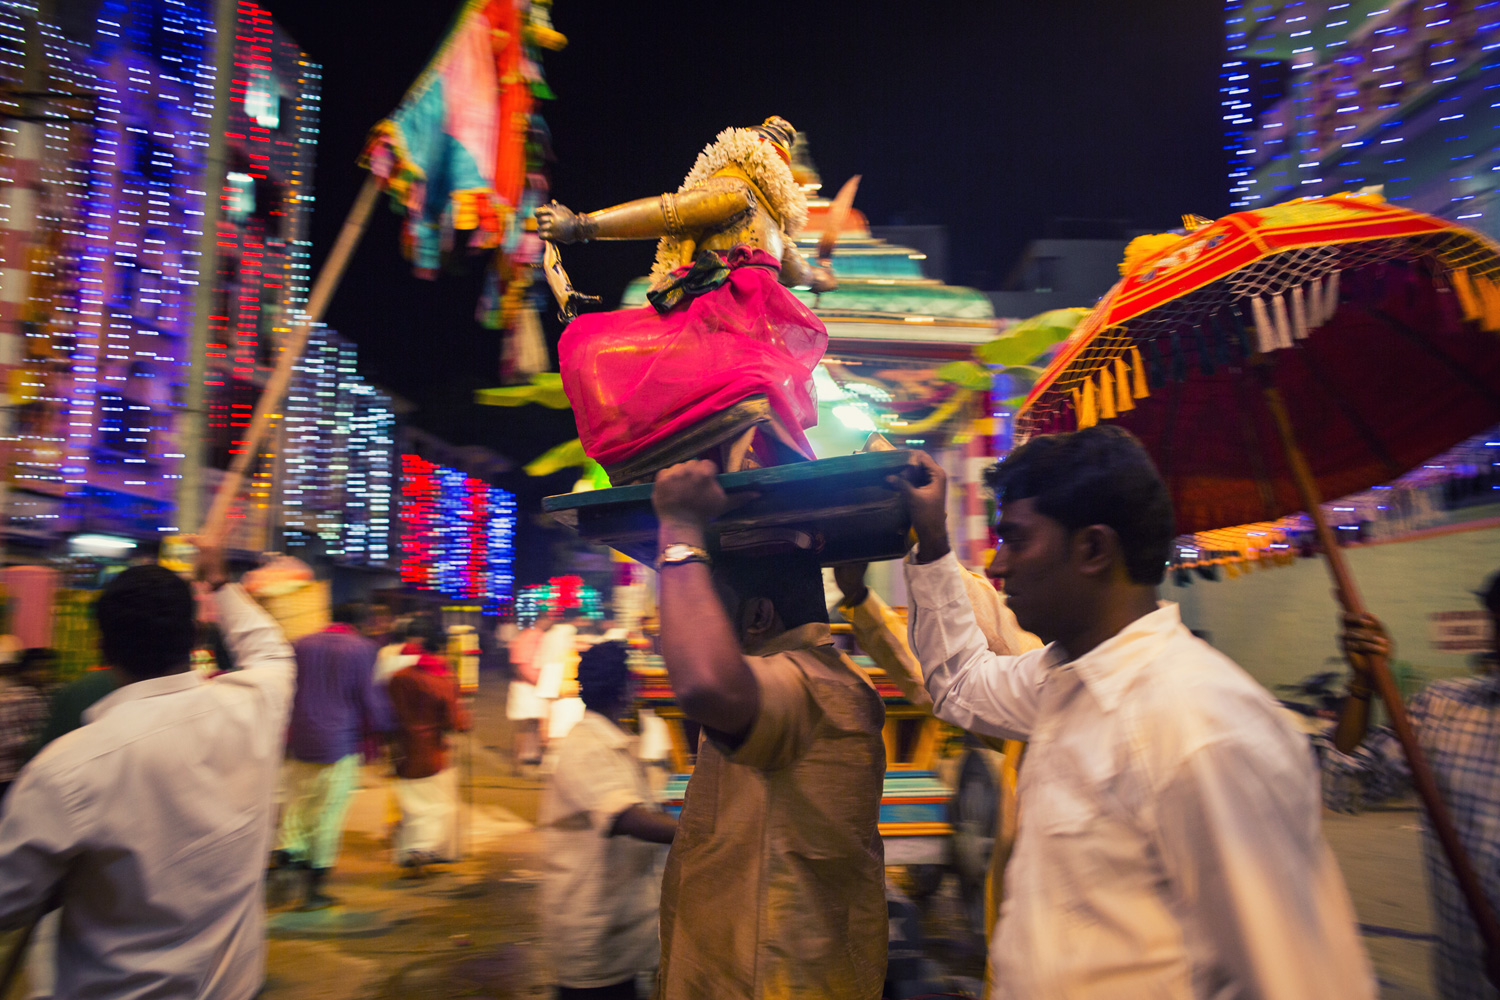 The first day of the Karaga begins with the hoisting of the flag and a procession of the temple idols. Seen here is the idol of a minor deity Potharaj, the brother-in-law of the Pandavas, being brought out. He wields a sword on his right hand and a goat in his left.